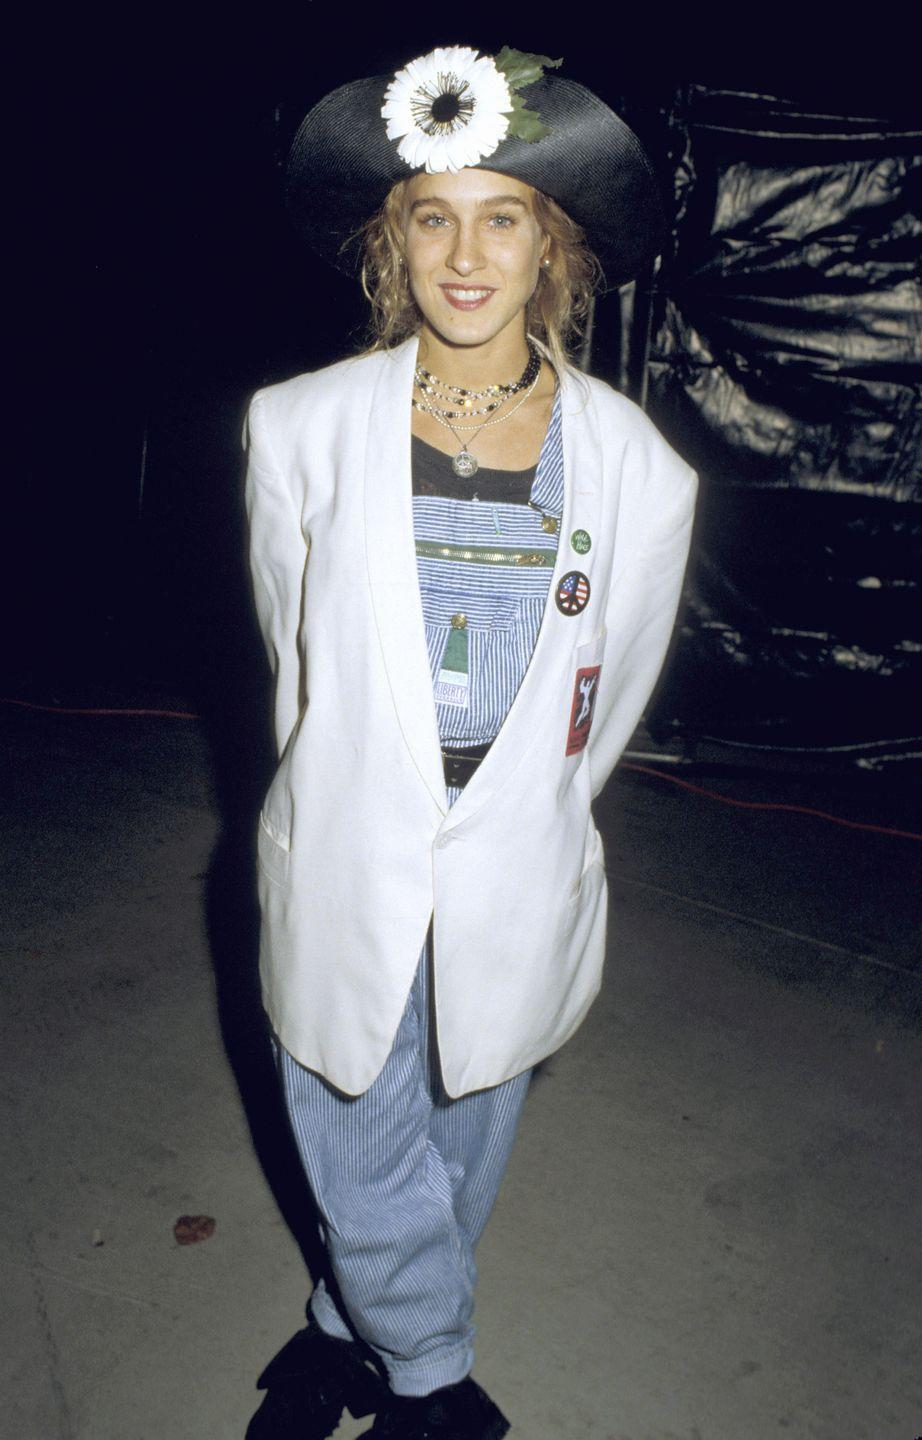 <p>A few months after the premiere of <em>Sex and the City</em>, SJP's style proved to be just as eccentric as her onscreen counterpart, Carrie Bradshaw's.</p>